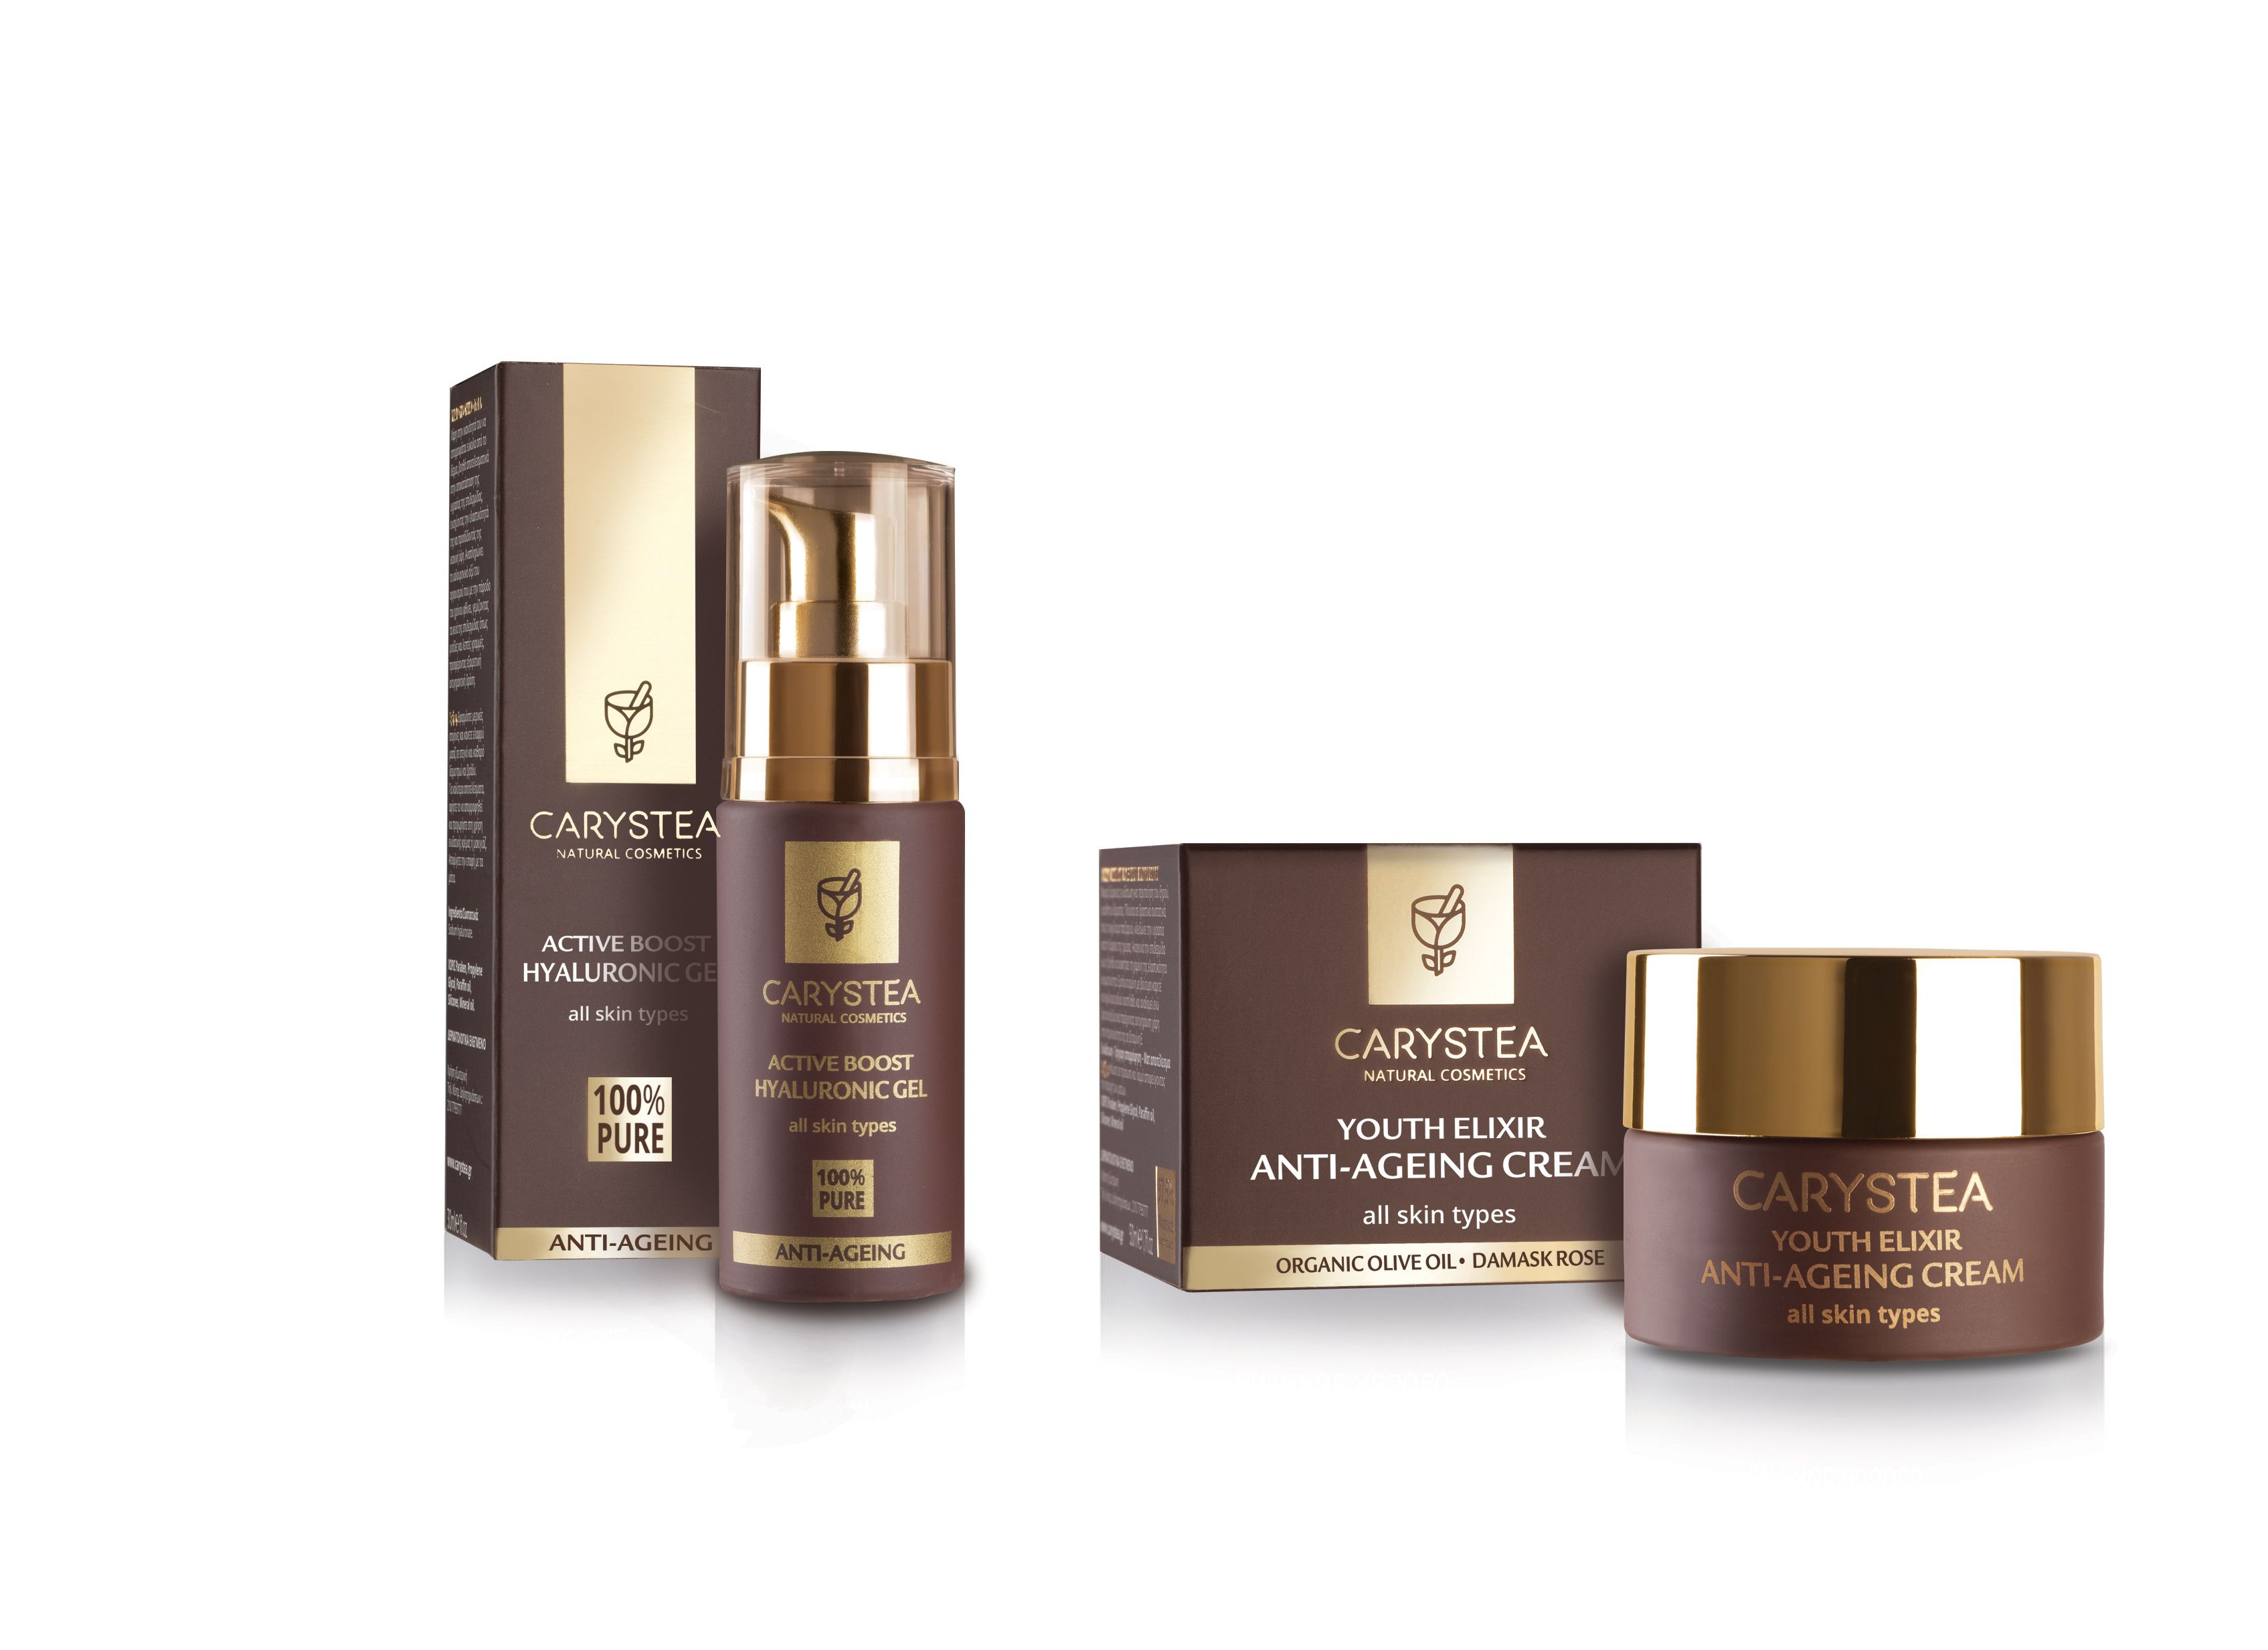 CARYSTEA Natural Cosmetics Packaging Design By Open Web More